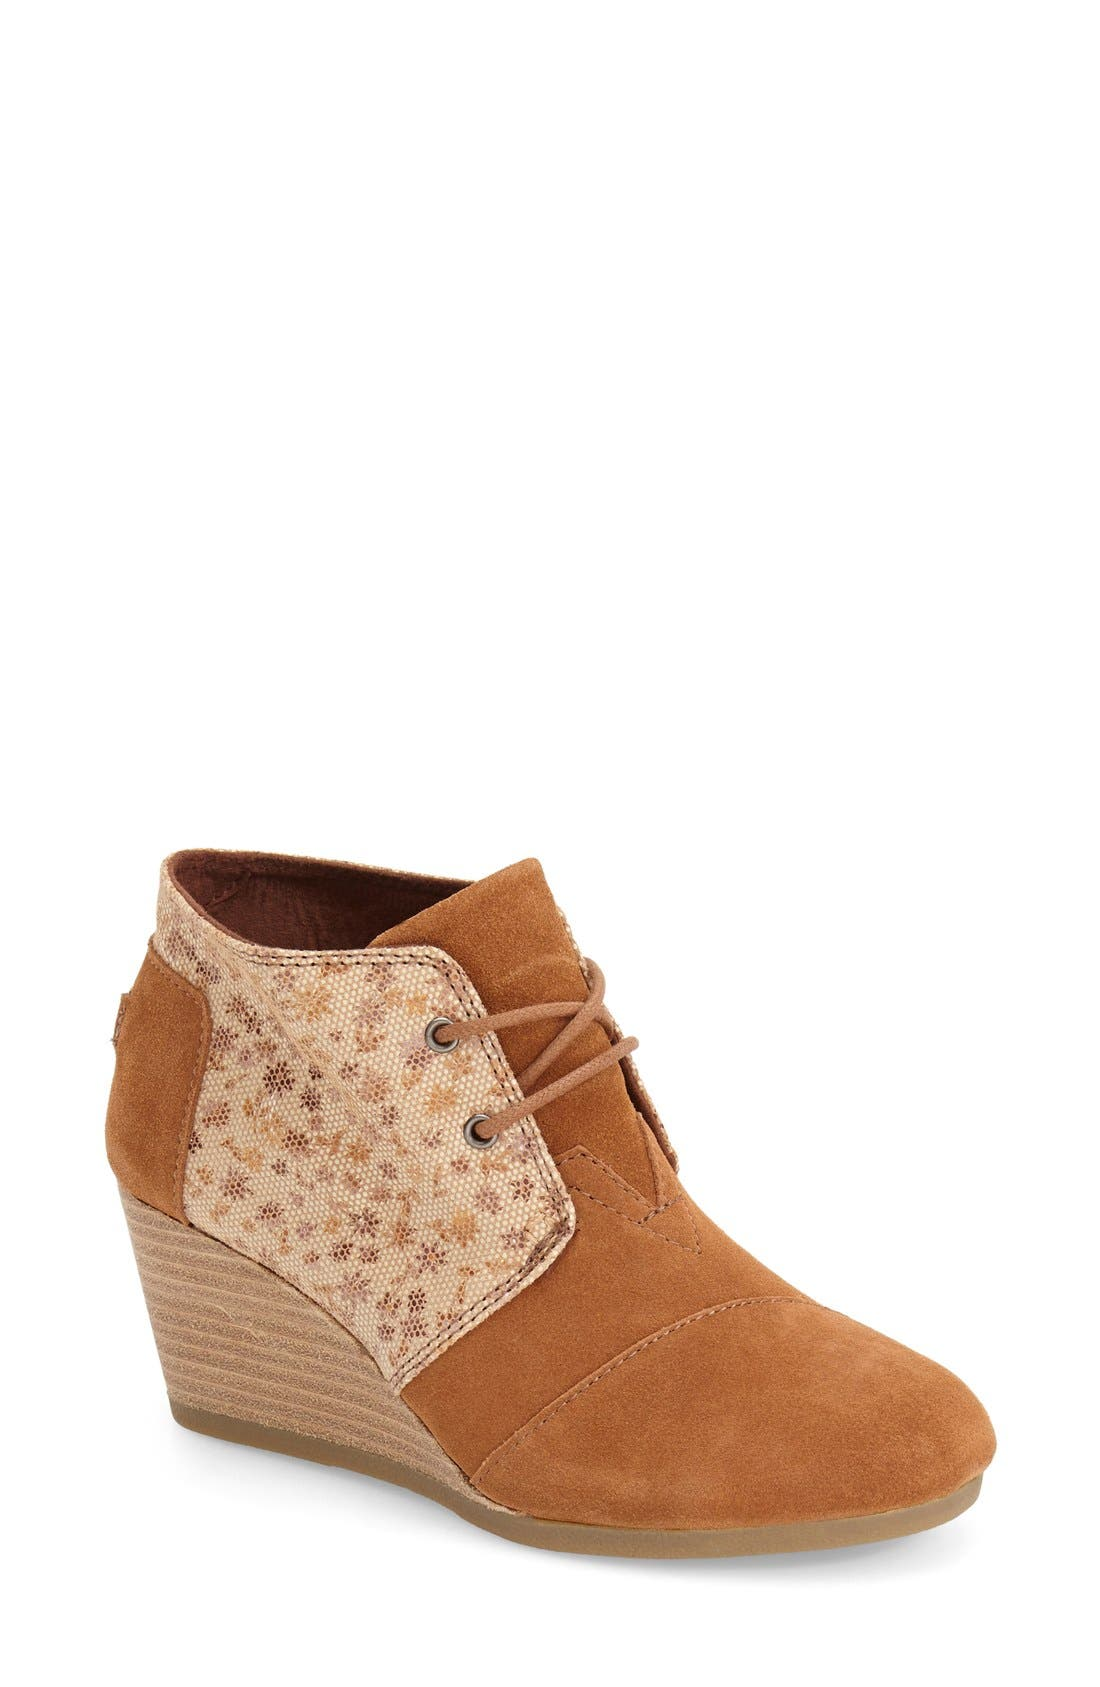 Alternate Image 1 Selected - TOMS 'Desert' Printed Wedge Bootie (Women)